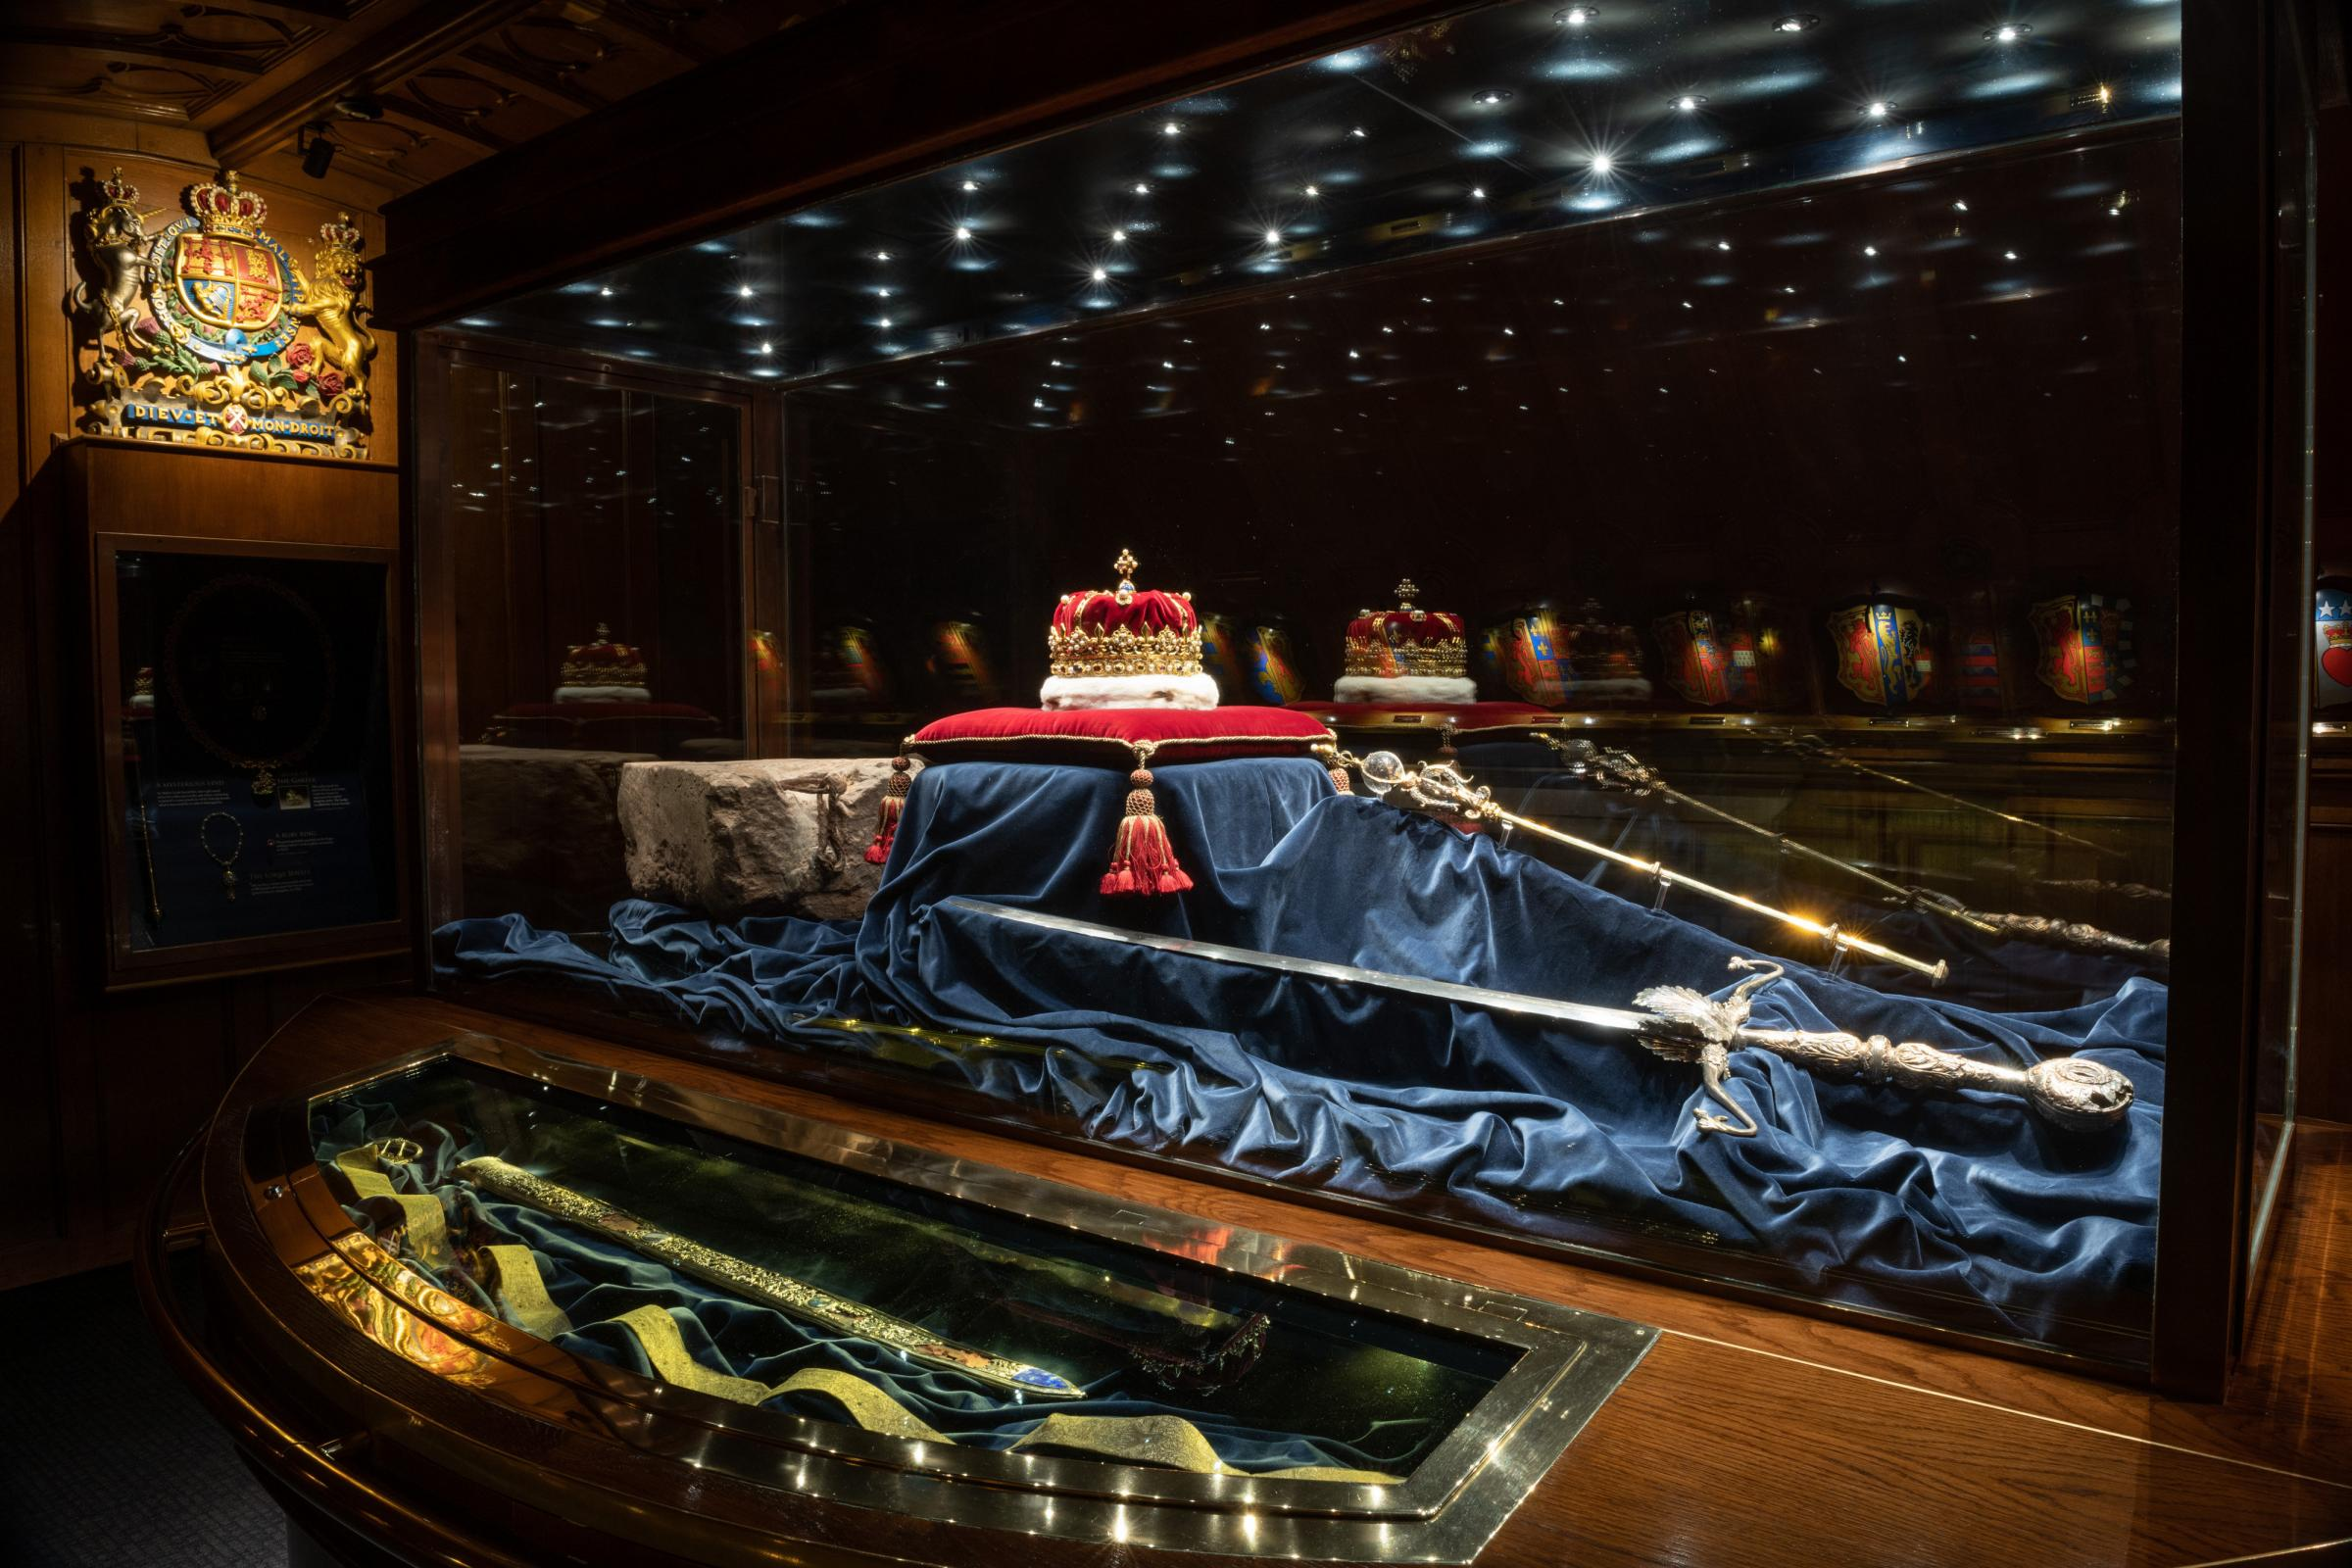 The story of the Honours of Scotland - our Crown Jewels